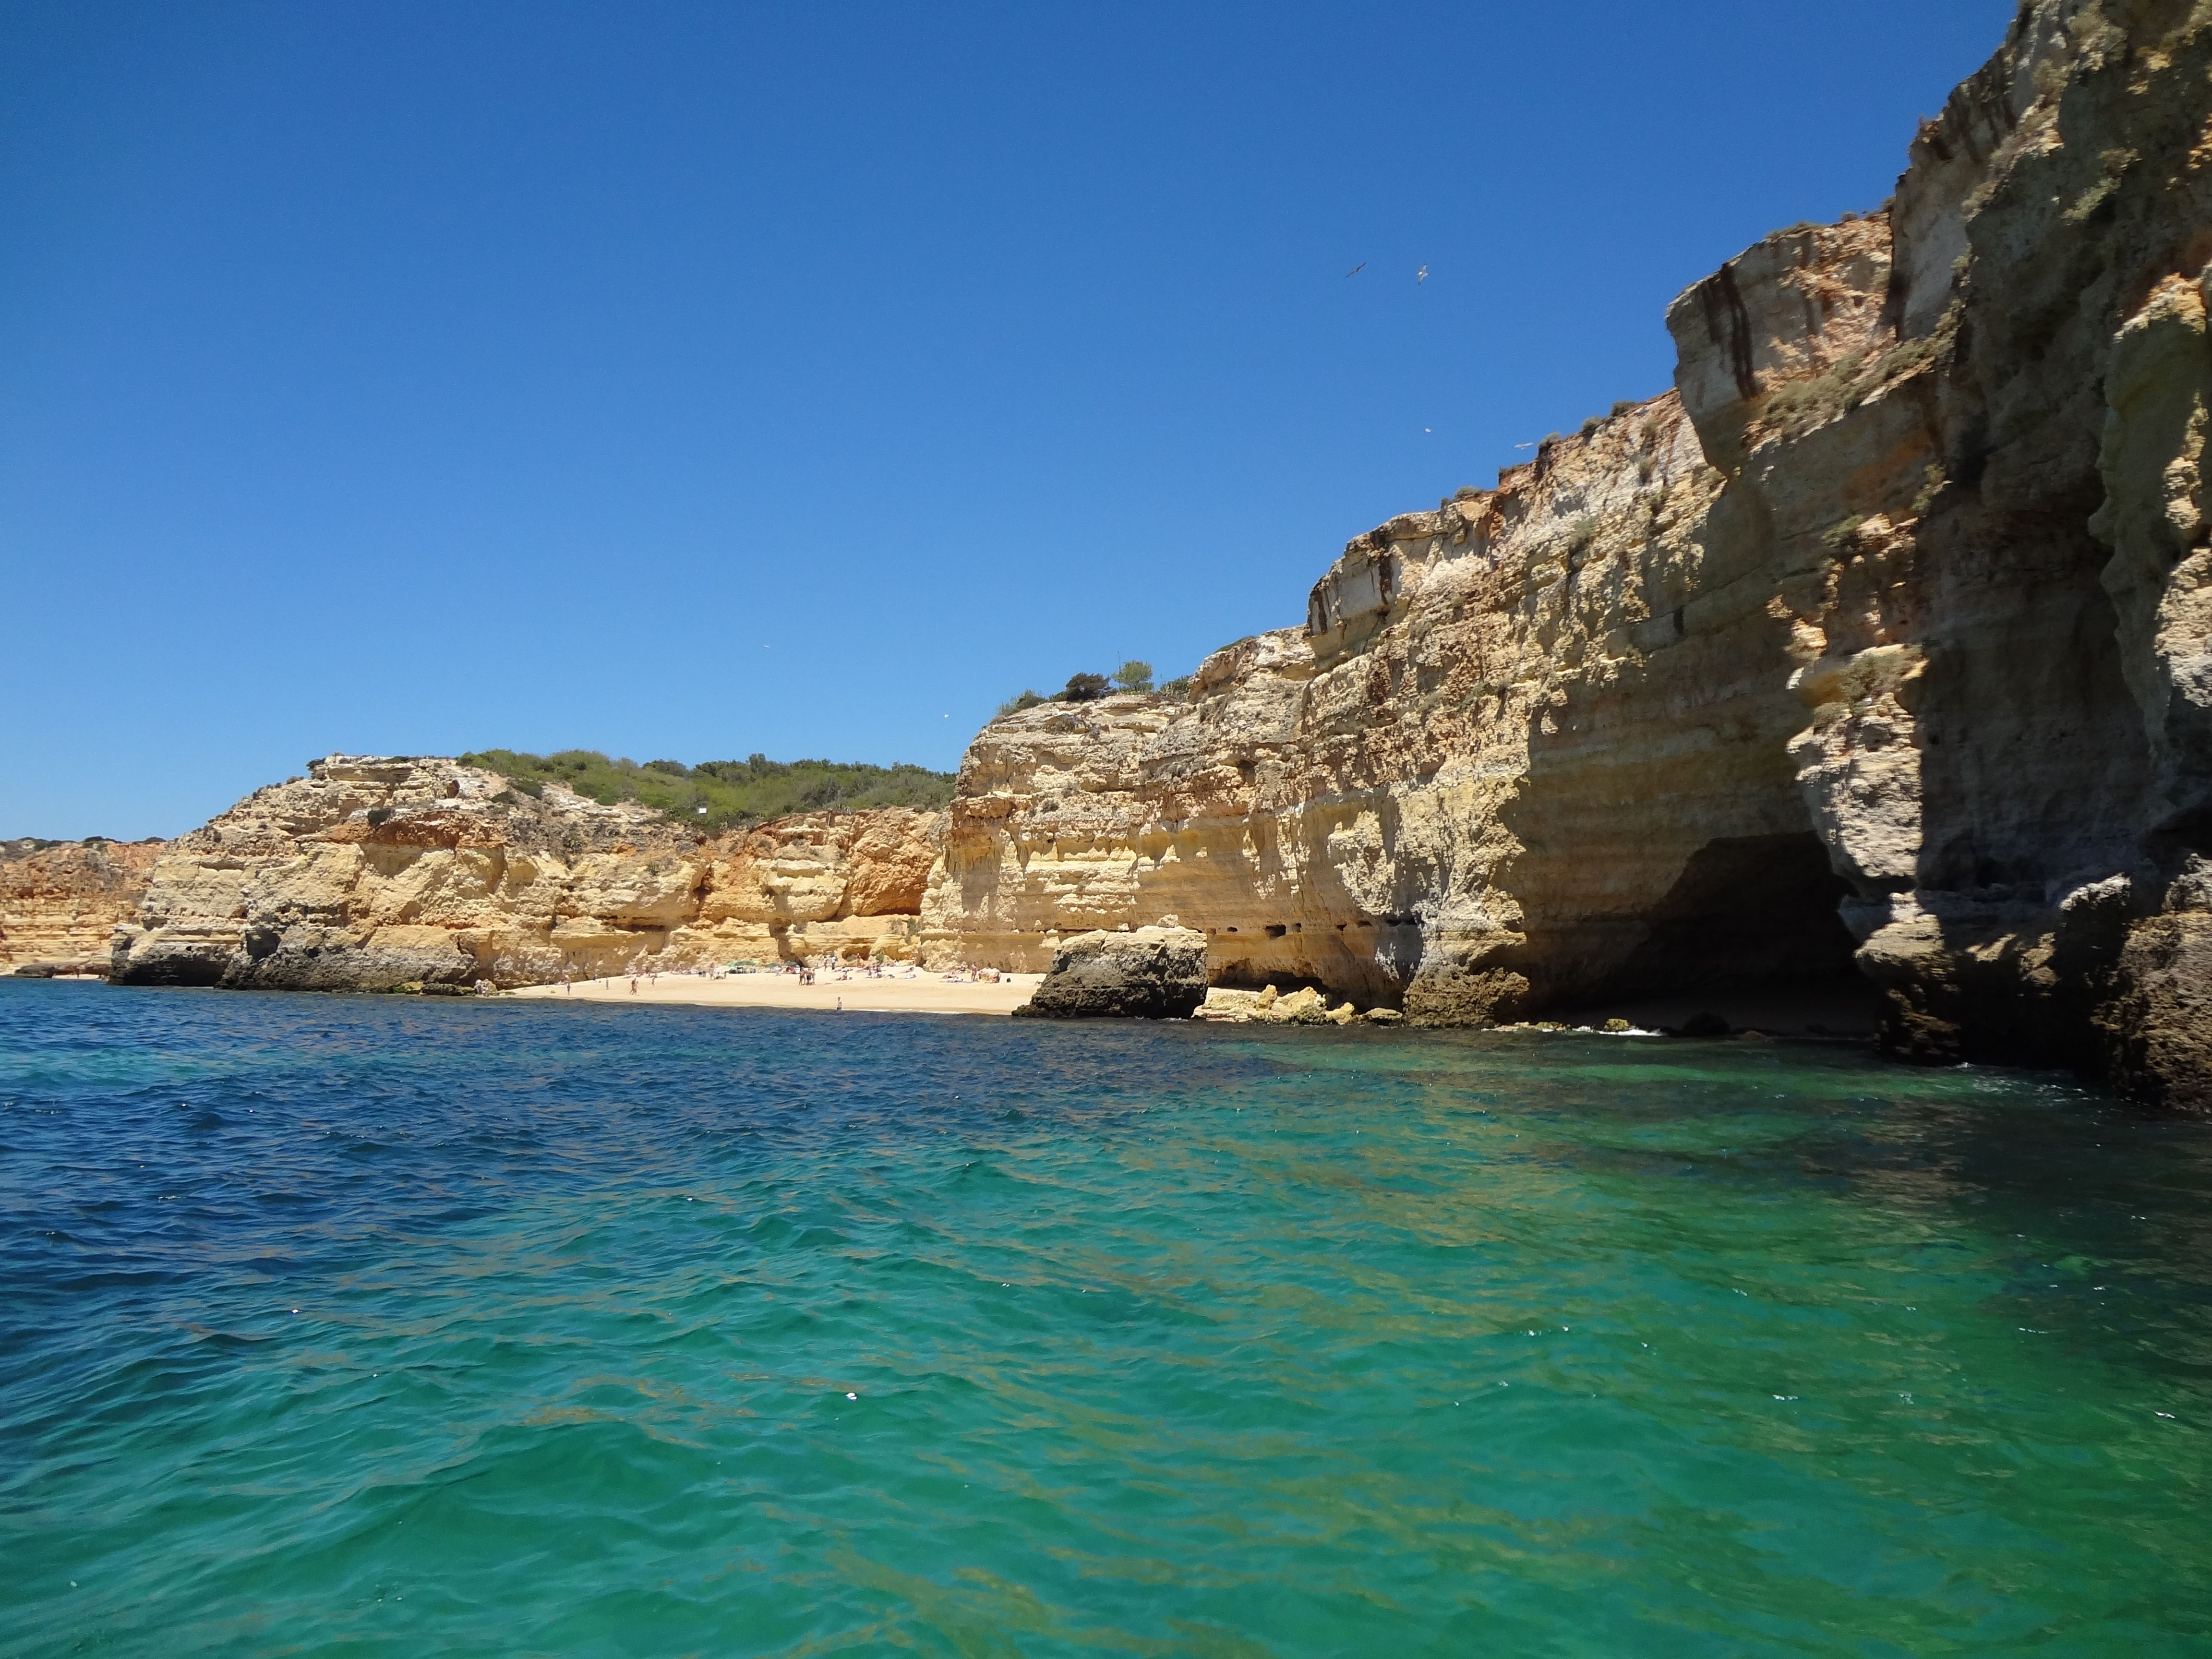 Algarve - it was just like on pictures.